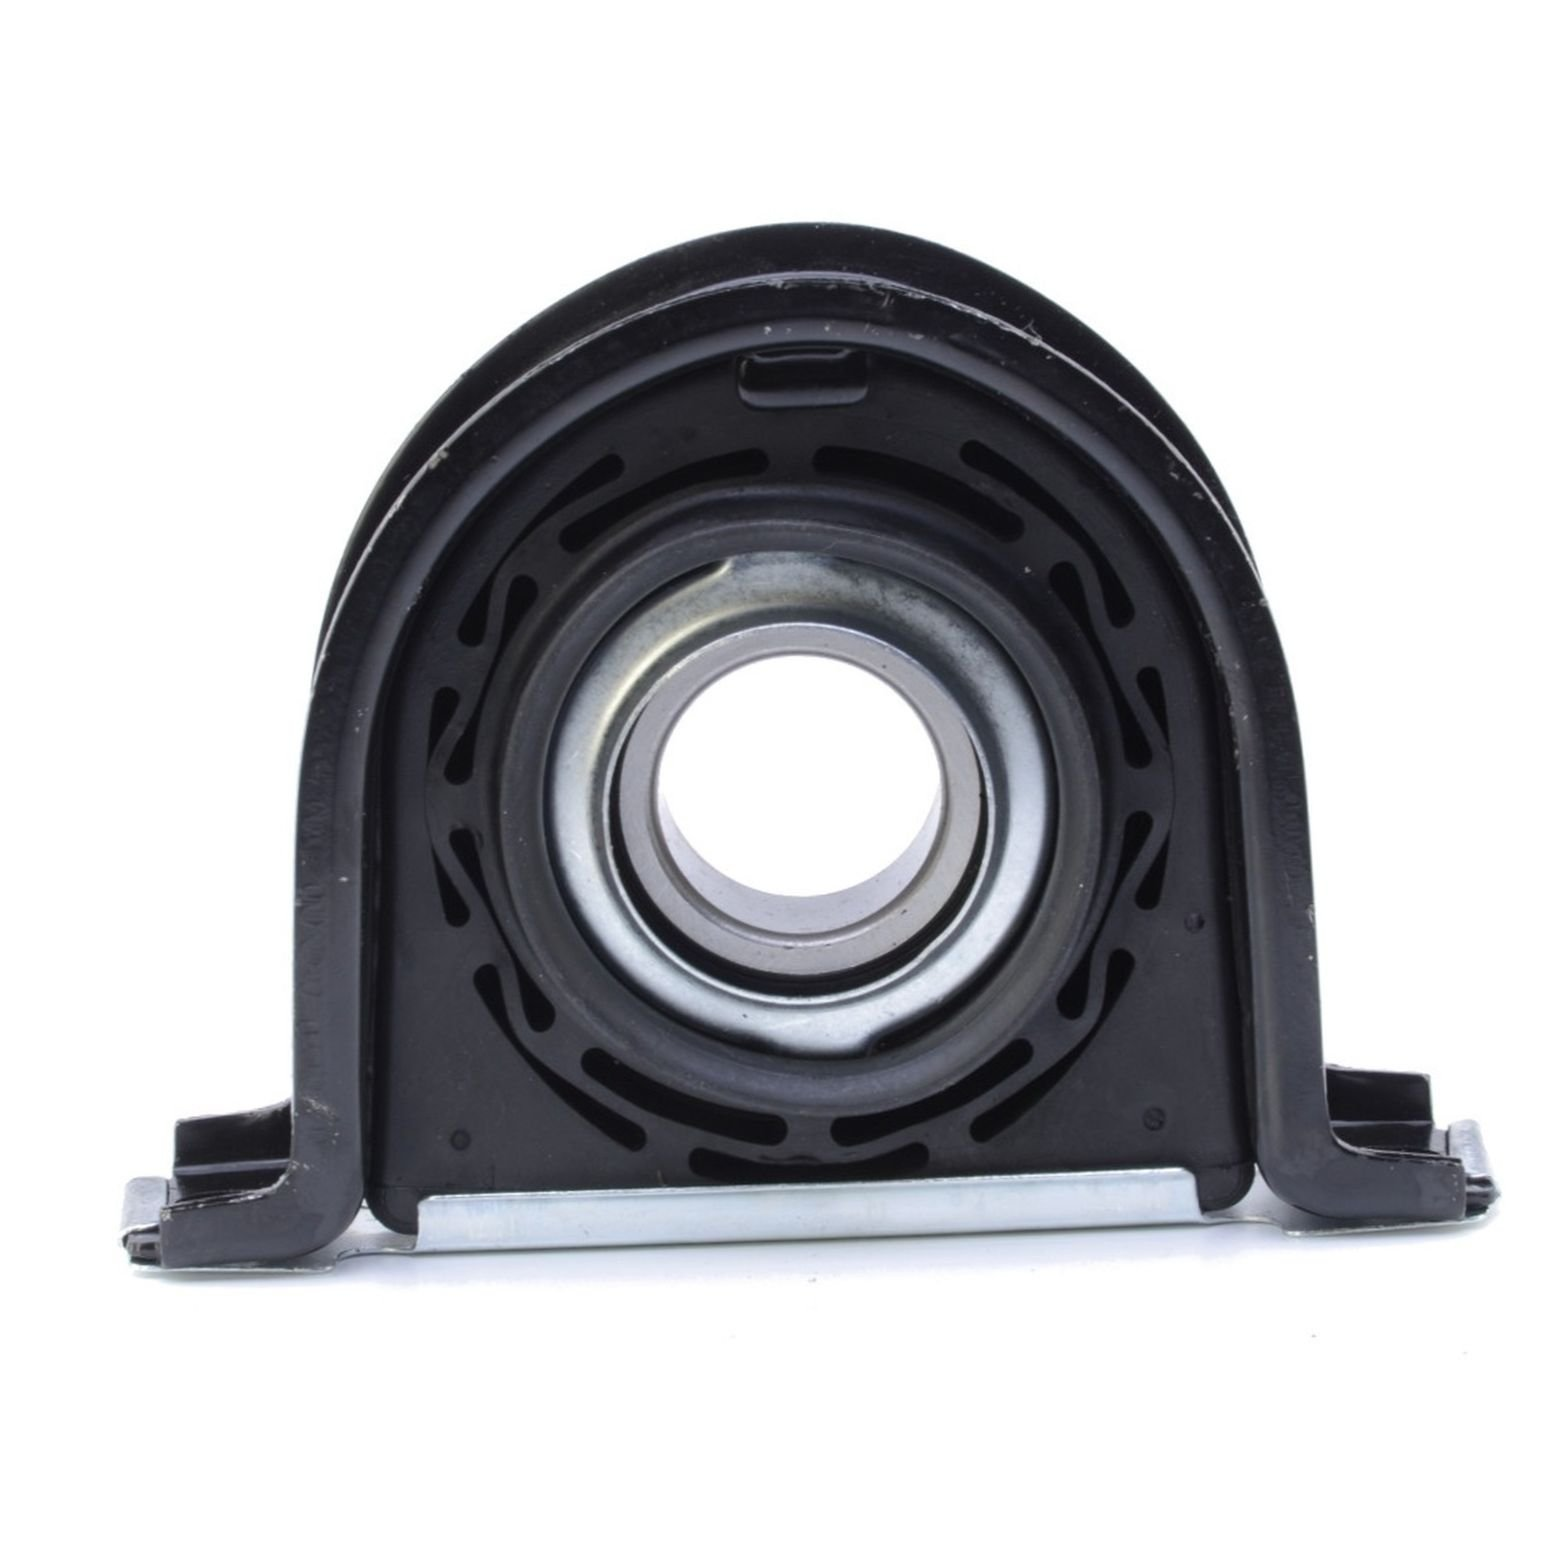 Onix Automotive N/A Drive Shaft Center Support Bearing OM6038 by Onix